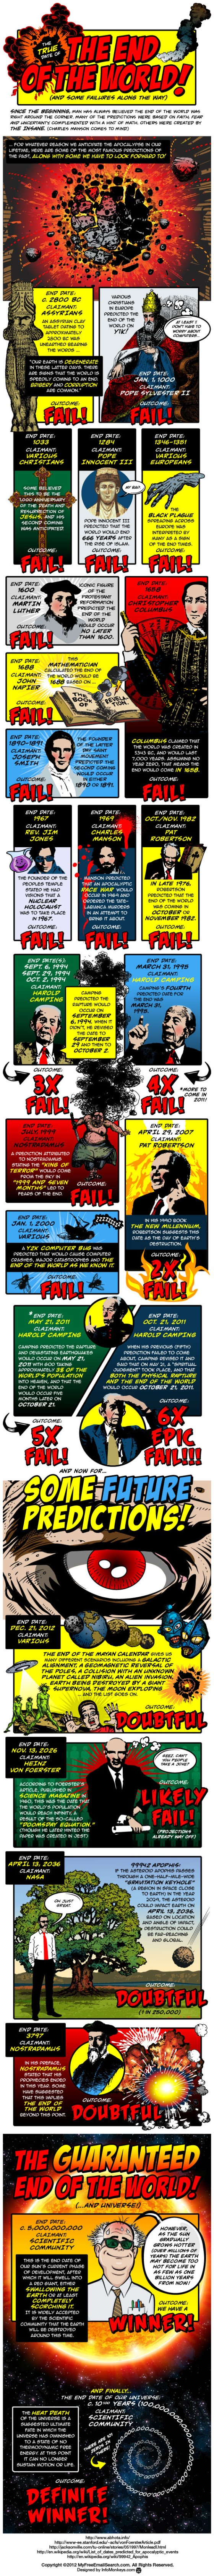 doomsday_end_of_the_world_apocalypse_infographic